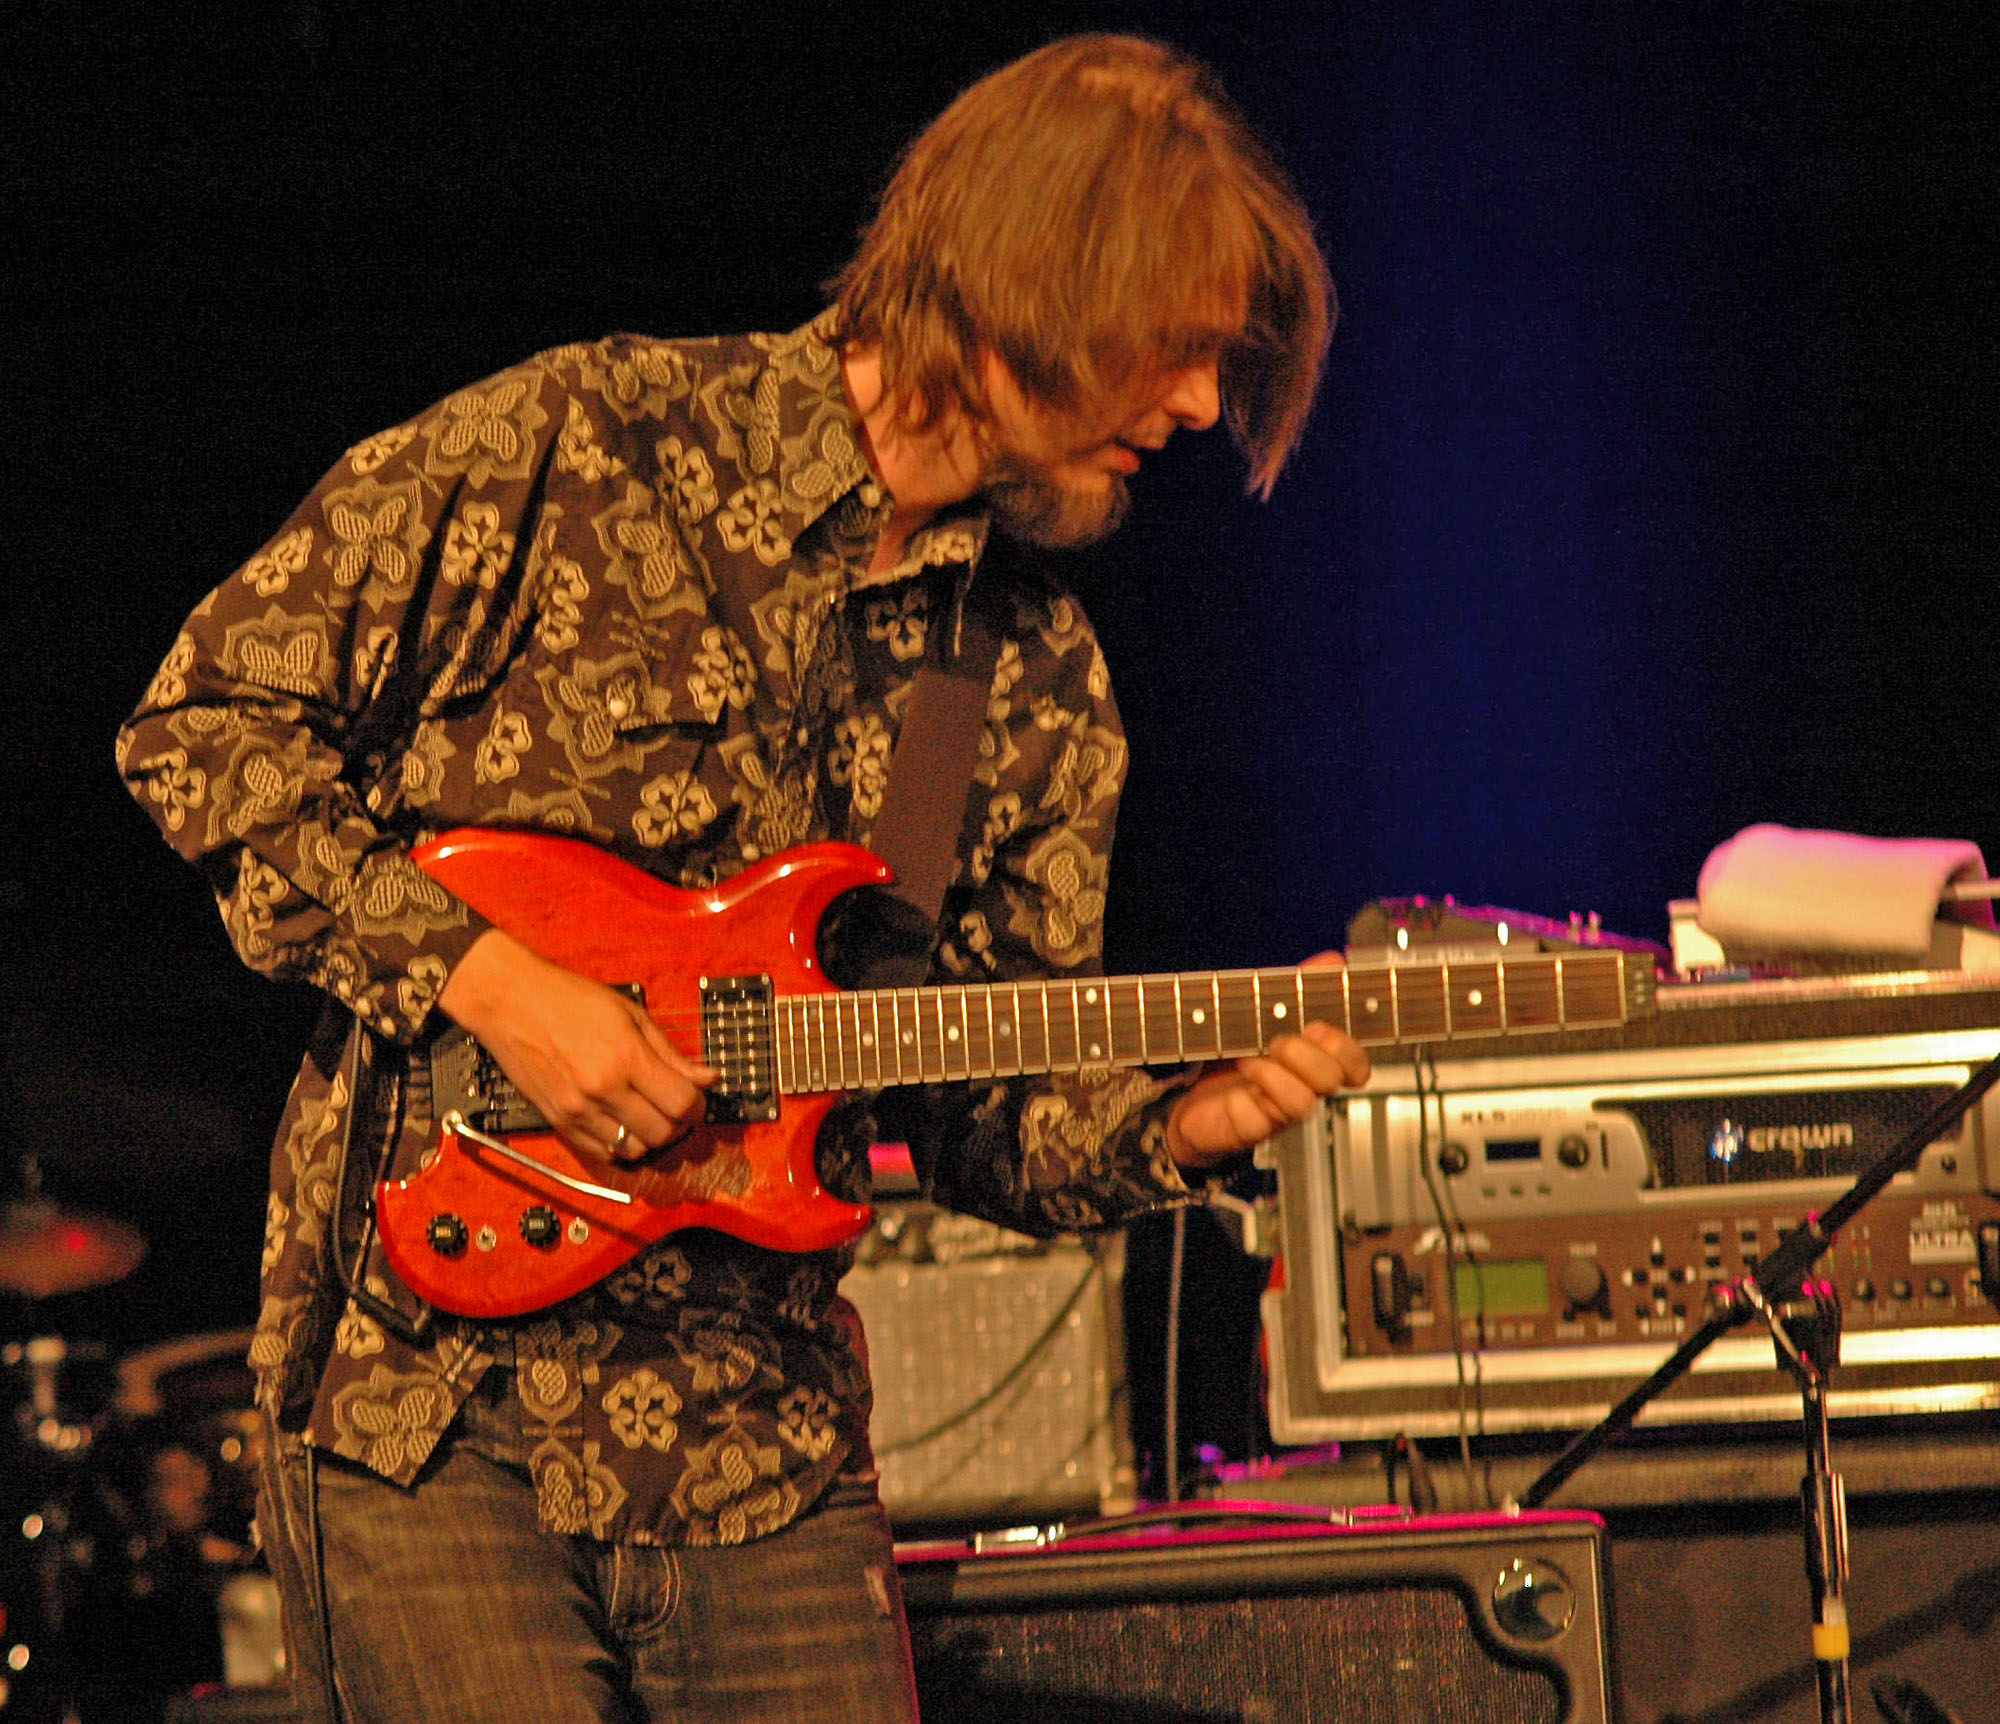 Alex Machacek, Performing at the New Universe Music Festival 2010